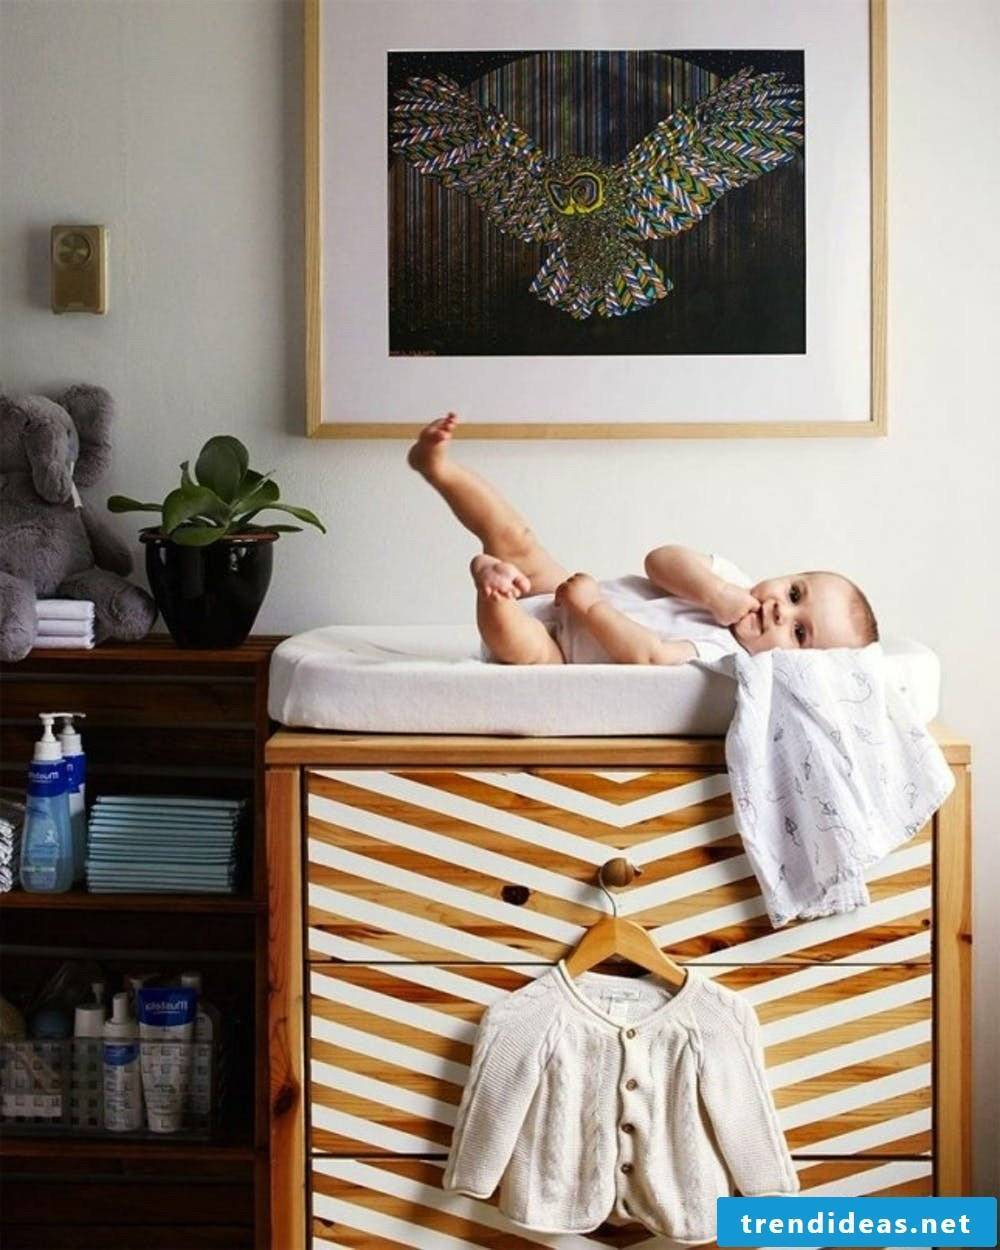 Complete baby room with Ikea hacks